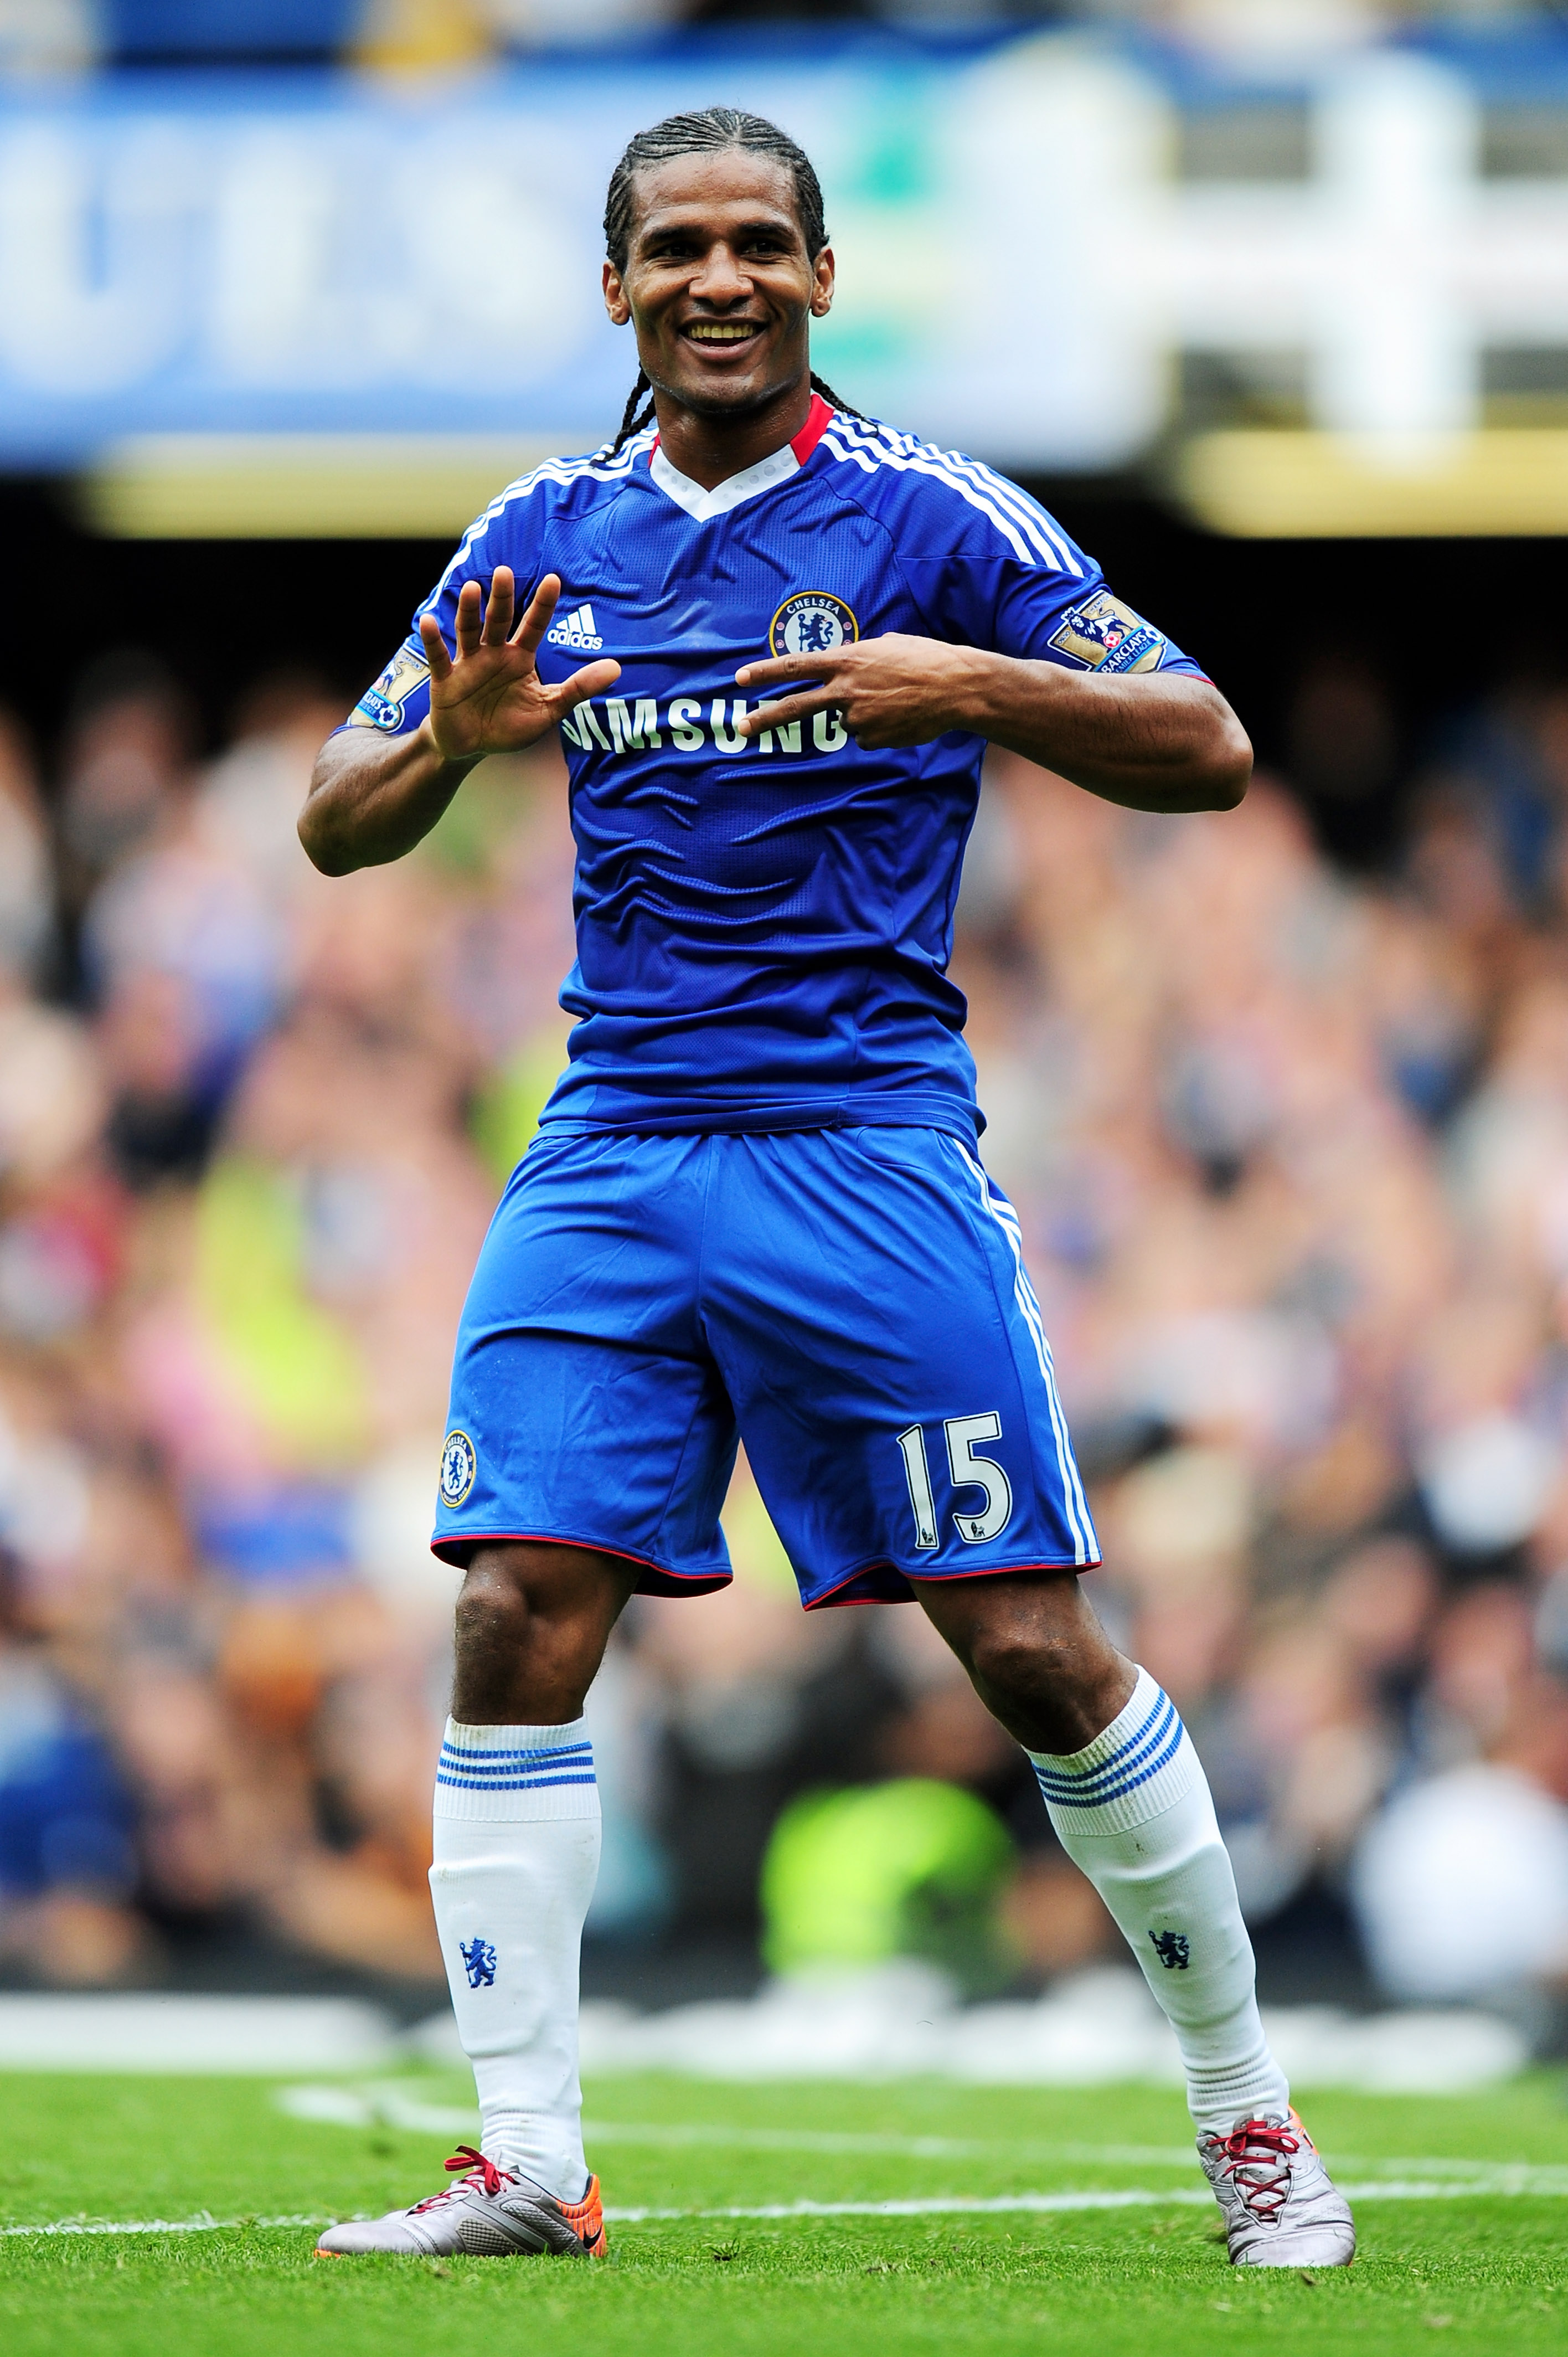 LONDON, ENGLAND - SEPTEMBER 19:  Florent Malouda of Chelsea celebrates after scoring his team's fourth goal during the Barclays Premier League match between Chelsea and Blackpool at Stamford Bridge on September 19, 2010 in London, England.  (Photo by Mike